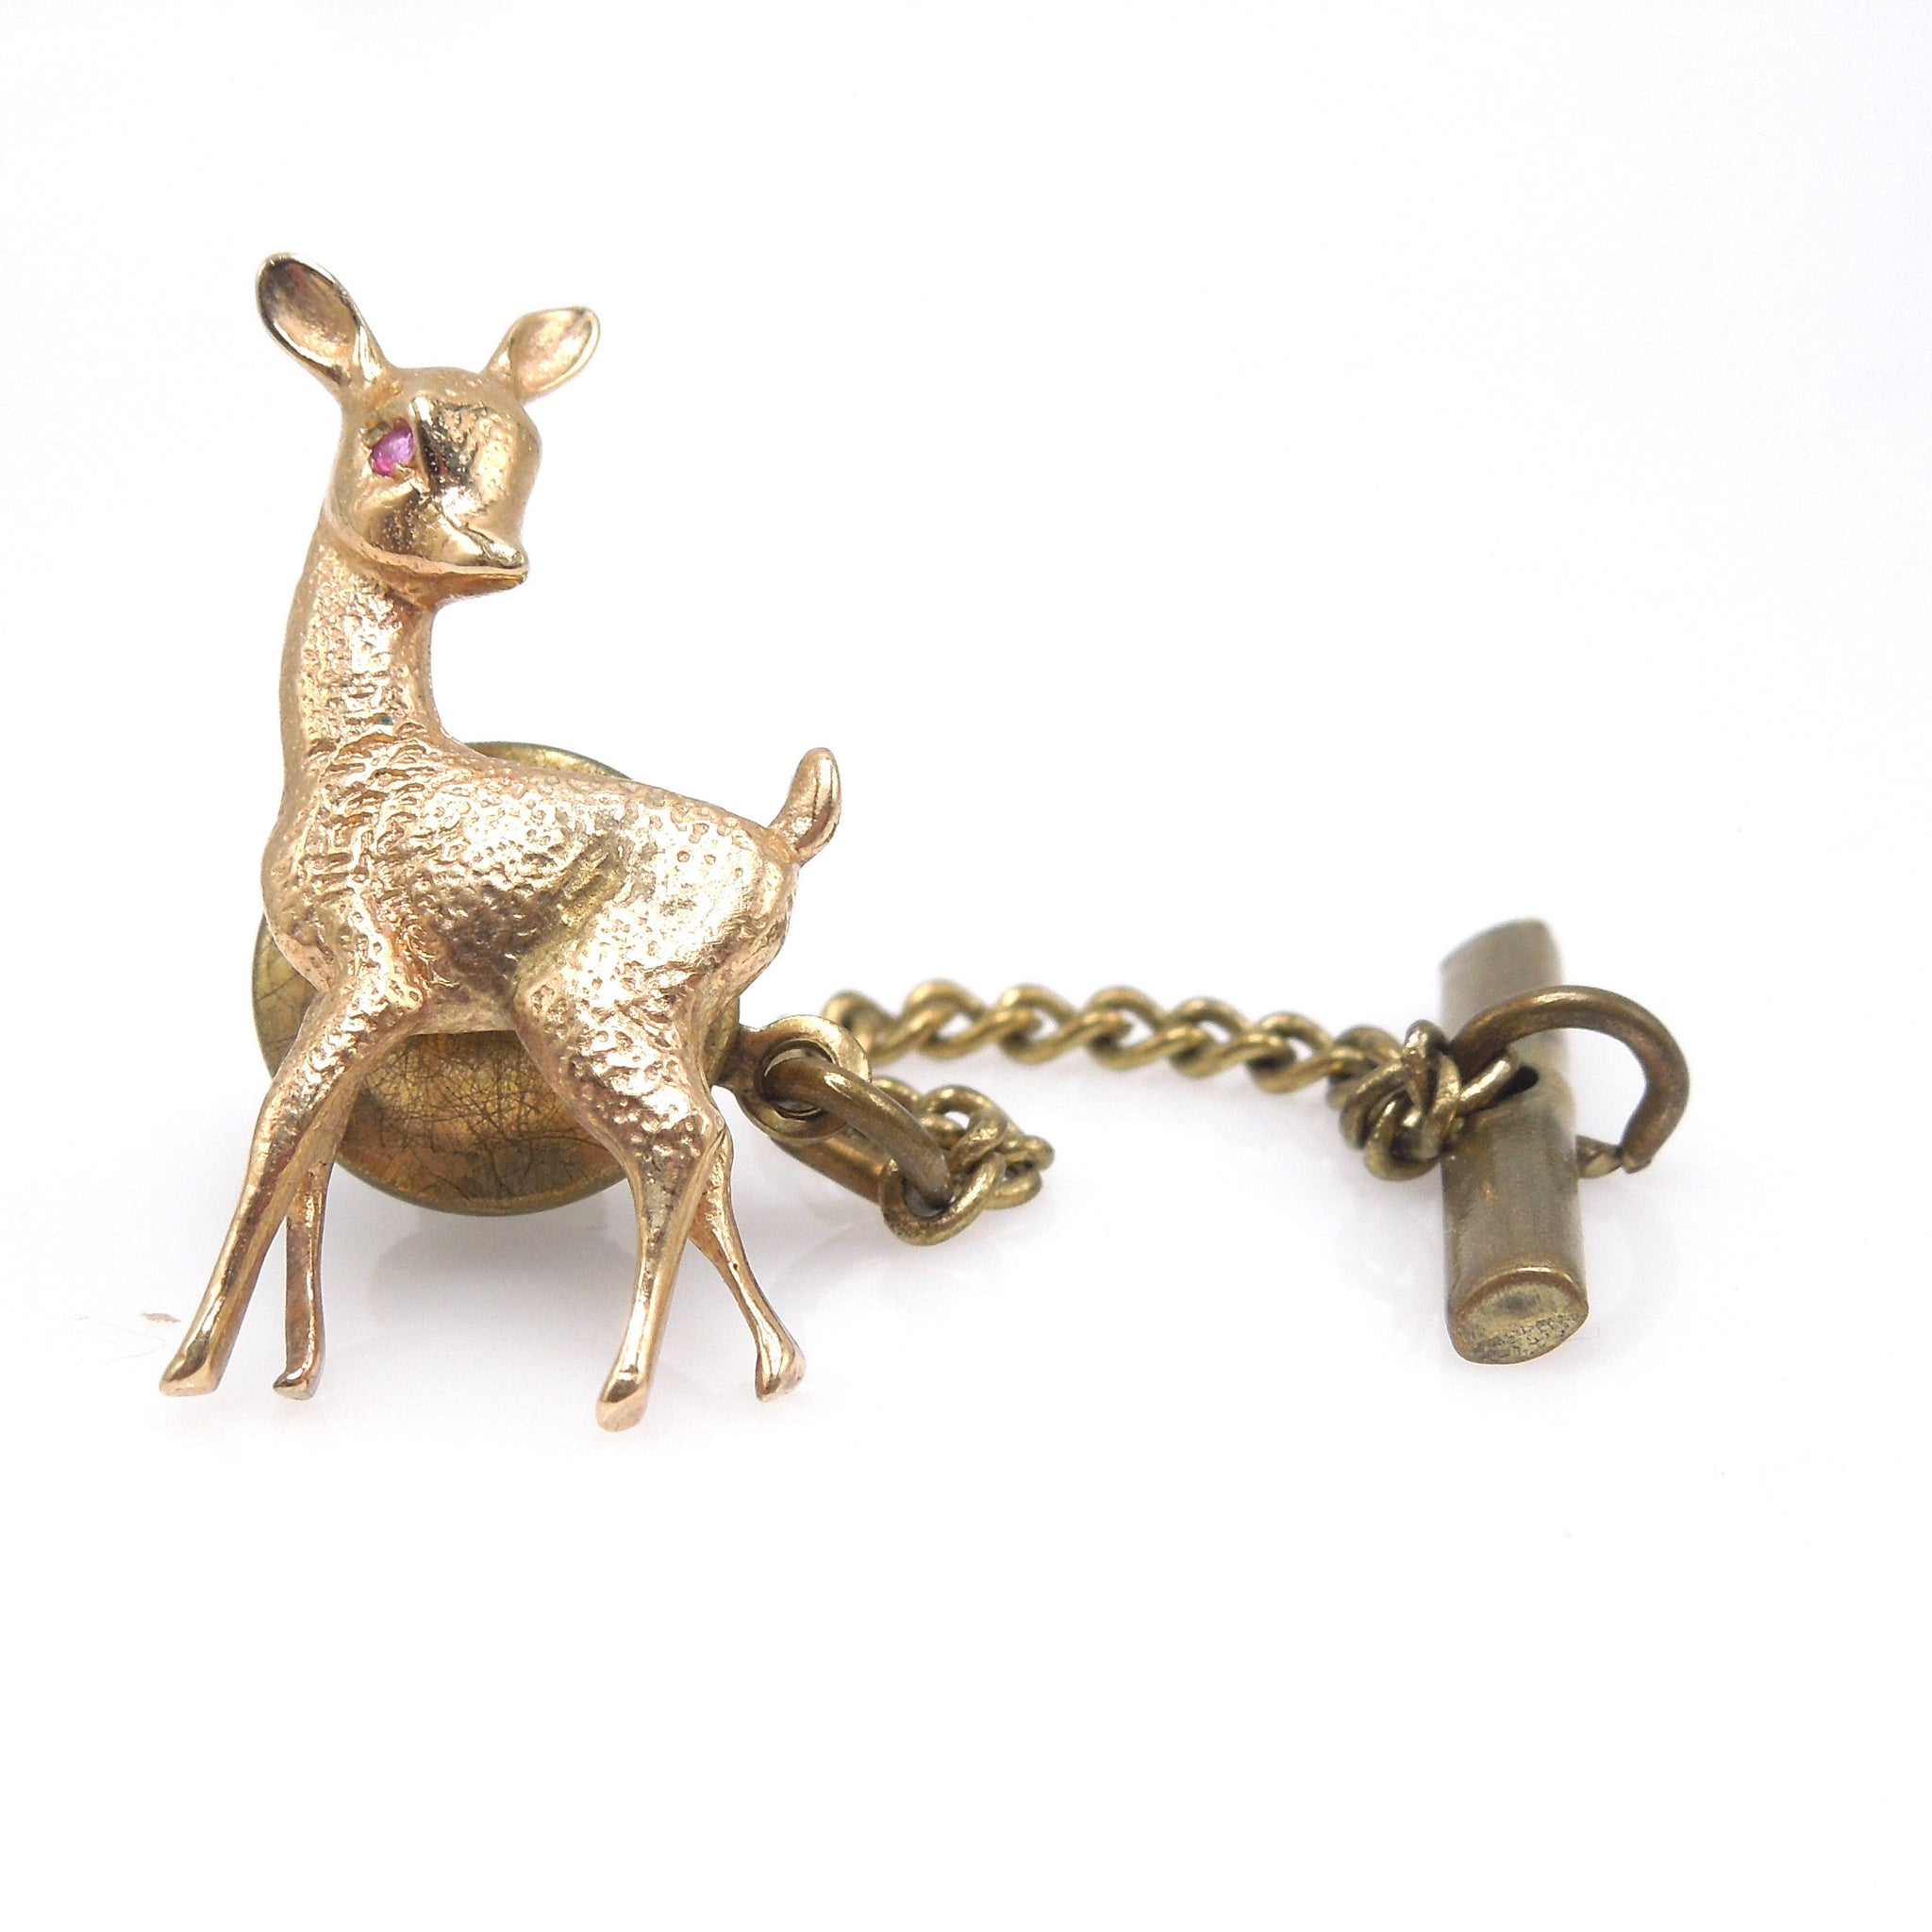 14K Yellow Gold Deer Pin with Ruby Eye